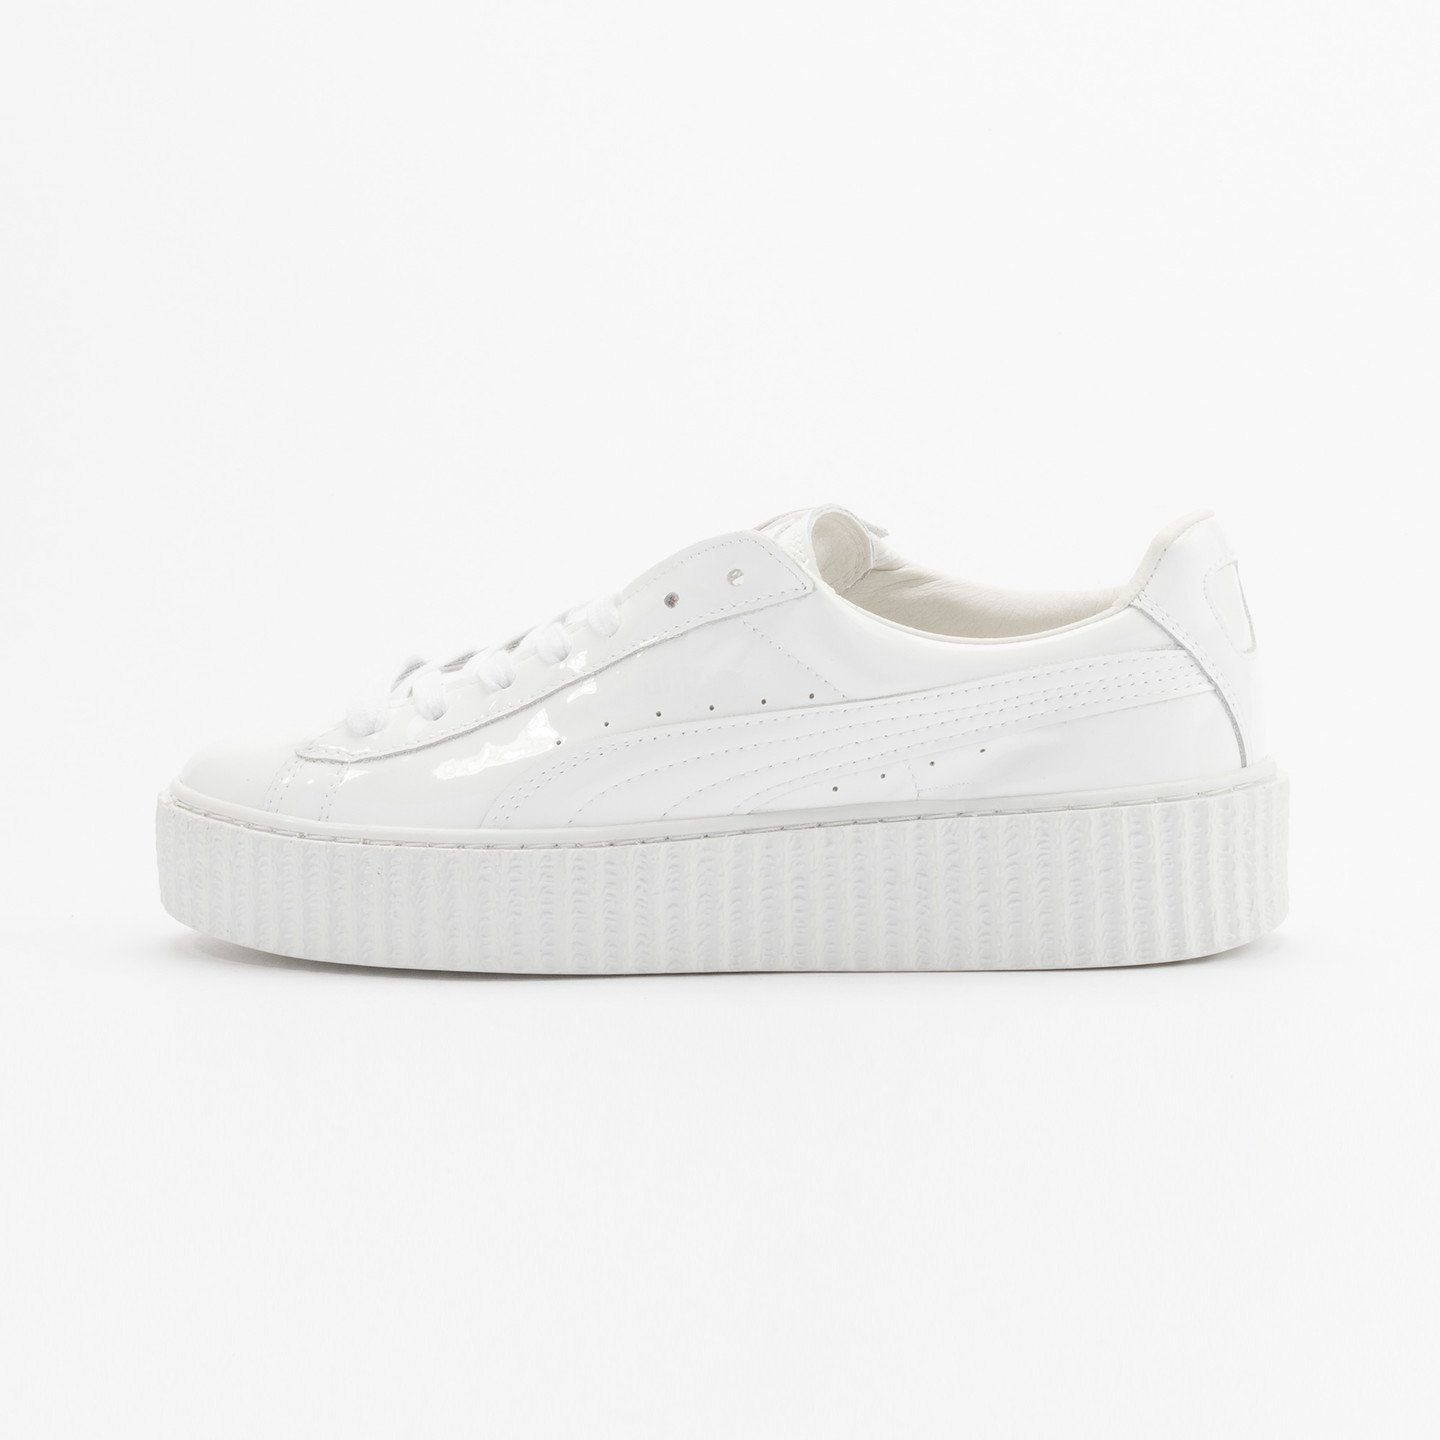 Puma Rihanna Basket Creepers Glo Triple White 362269 01-40